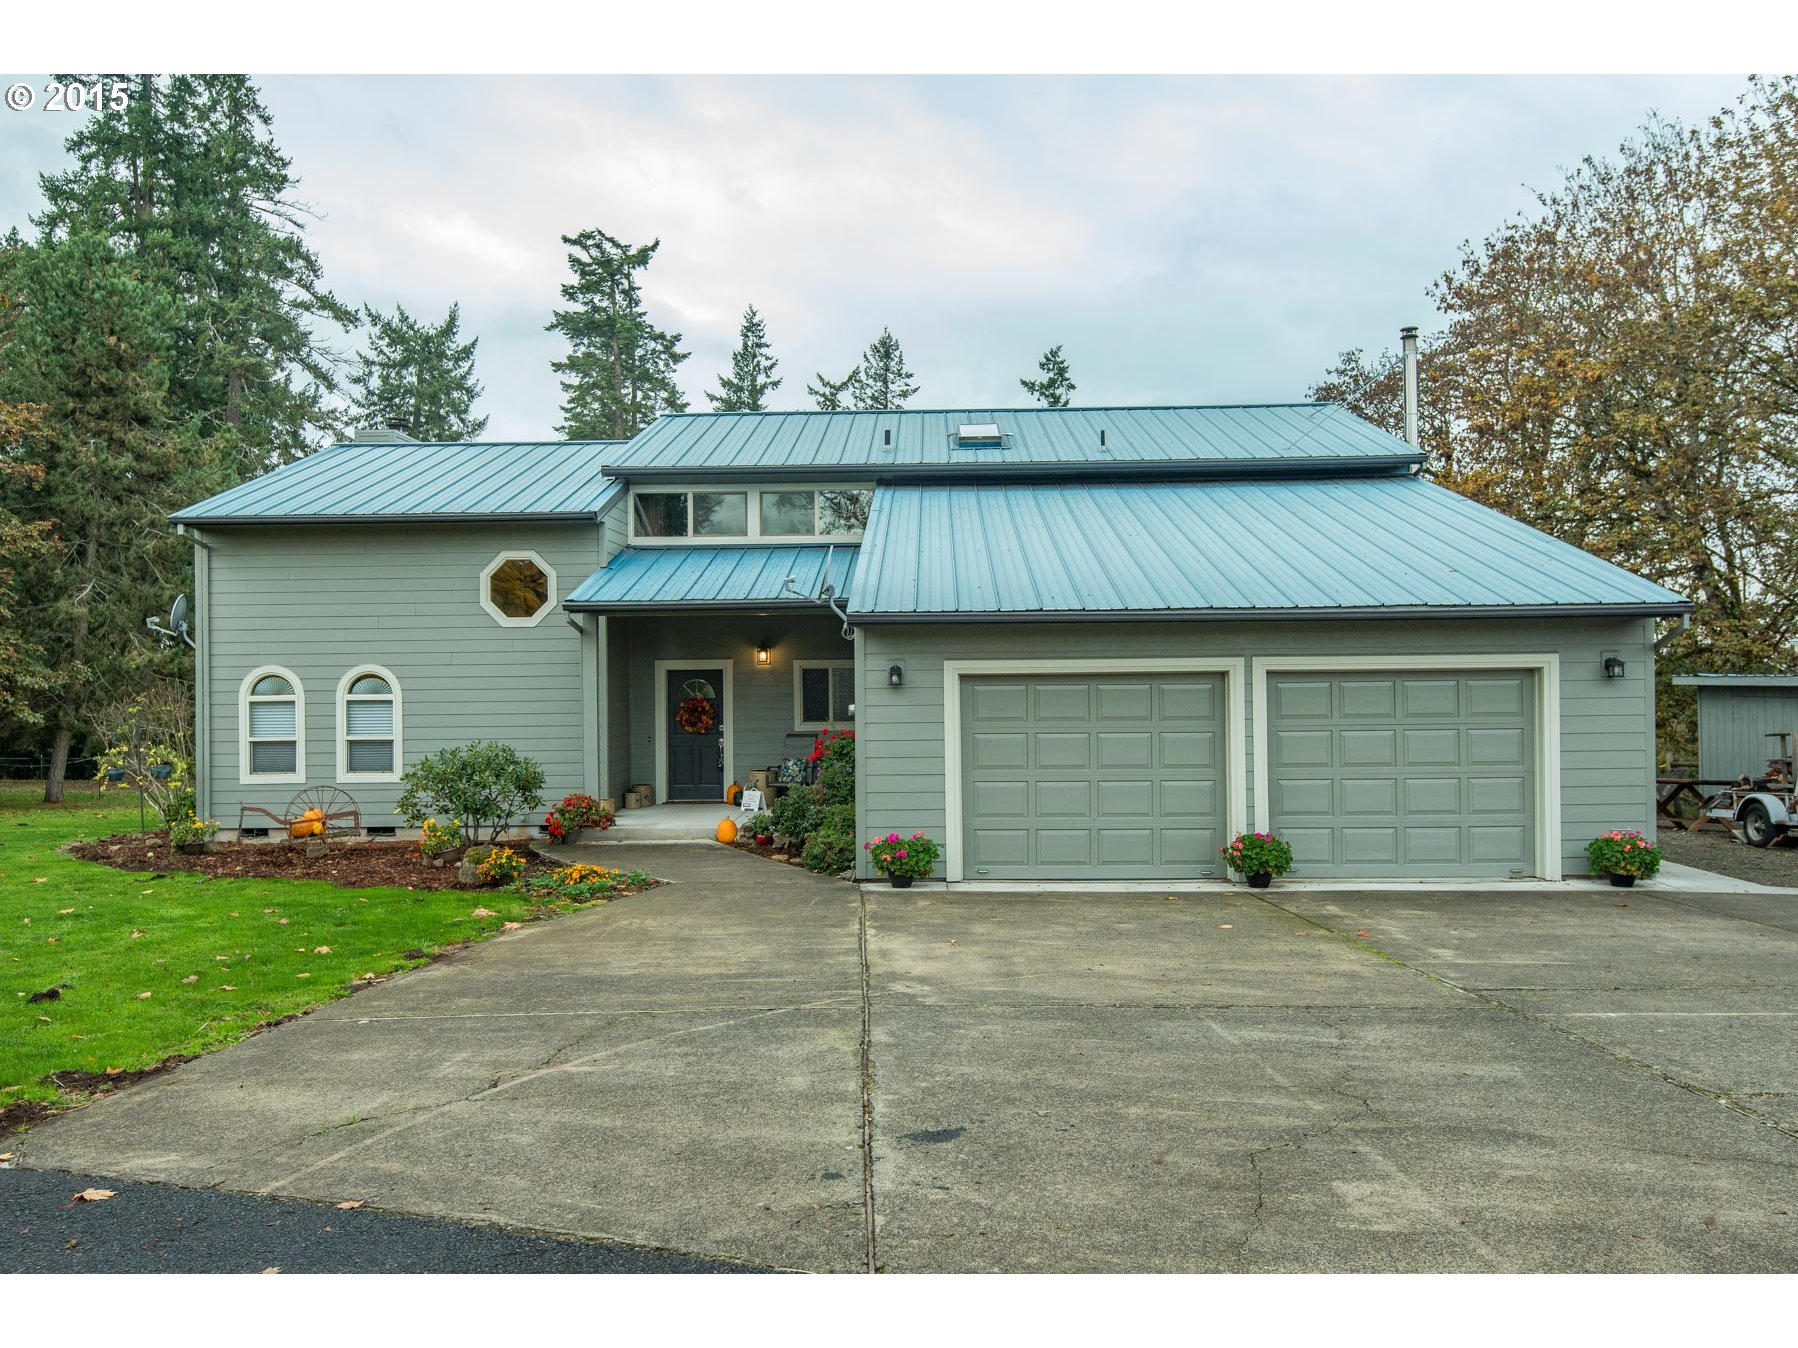 31775 S WRIGHT RD, Molalla, OR 97038